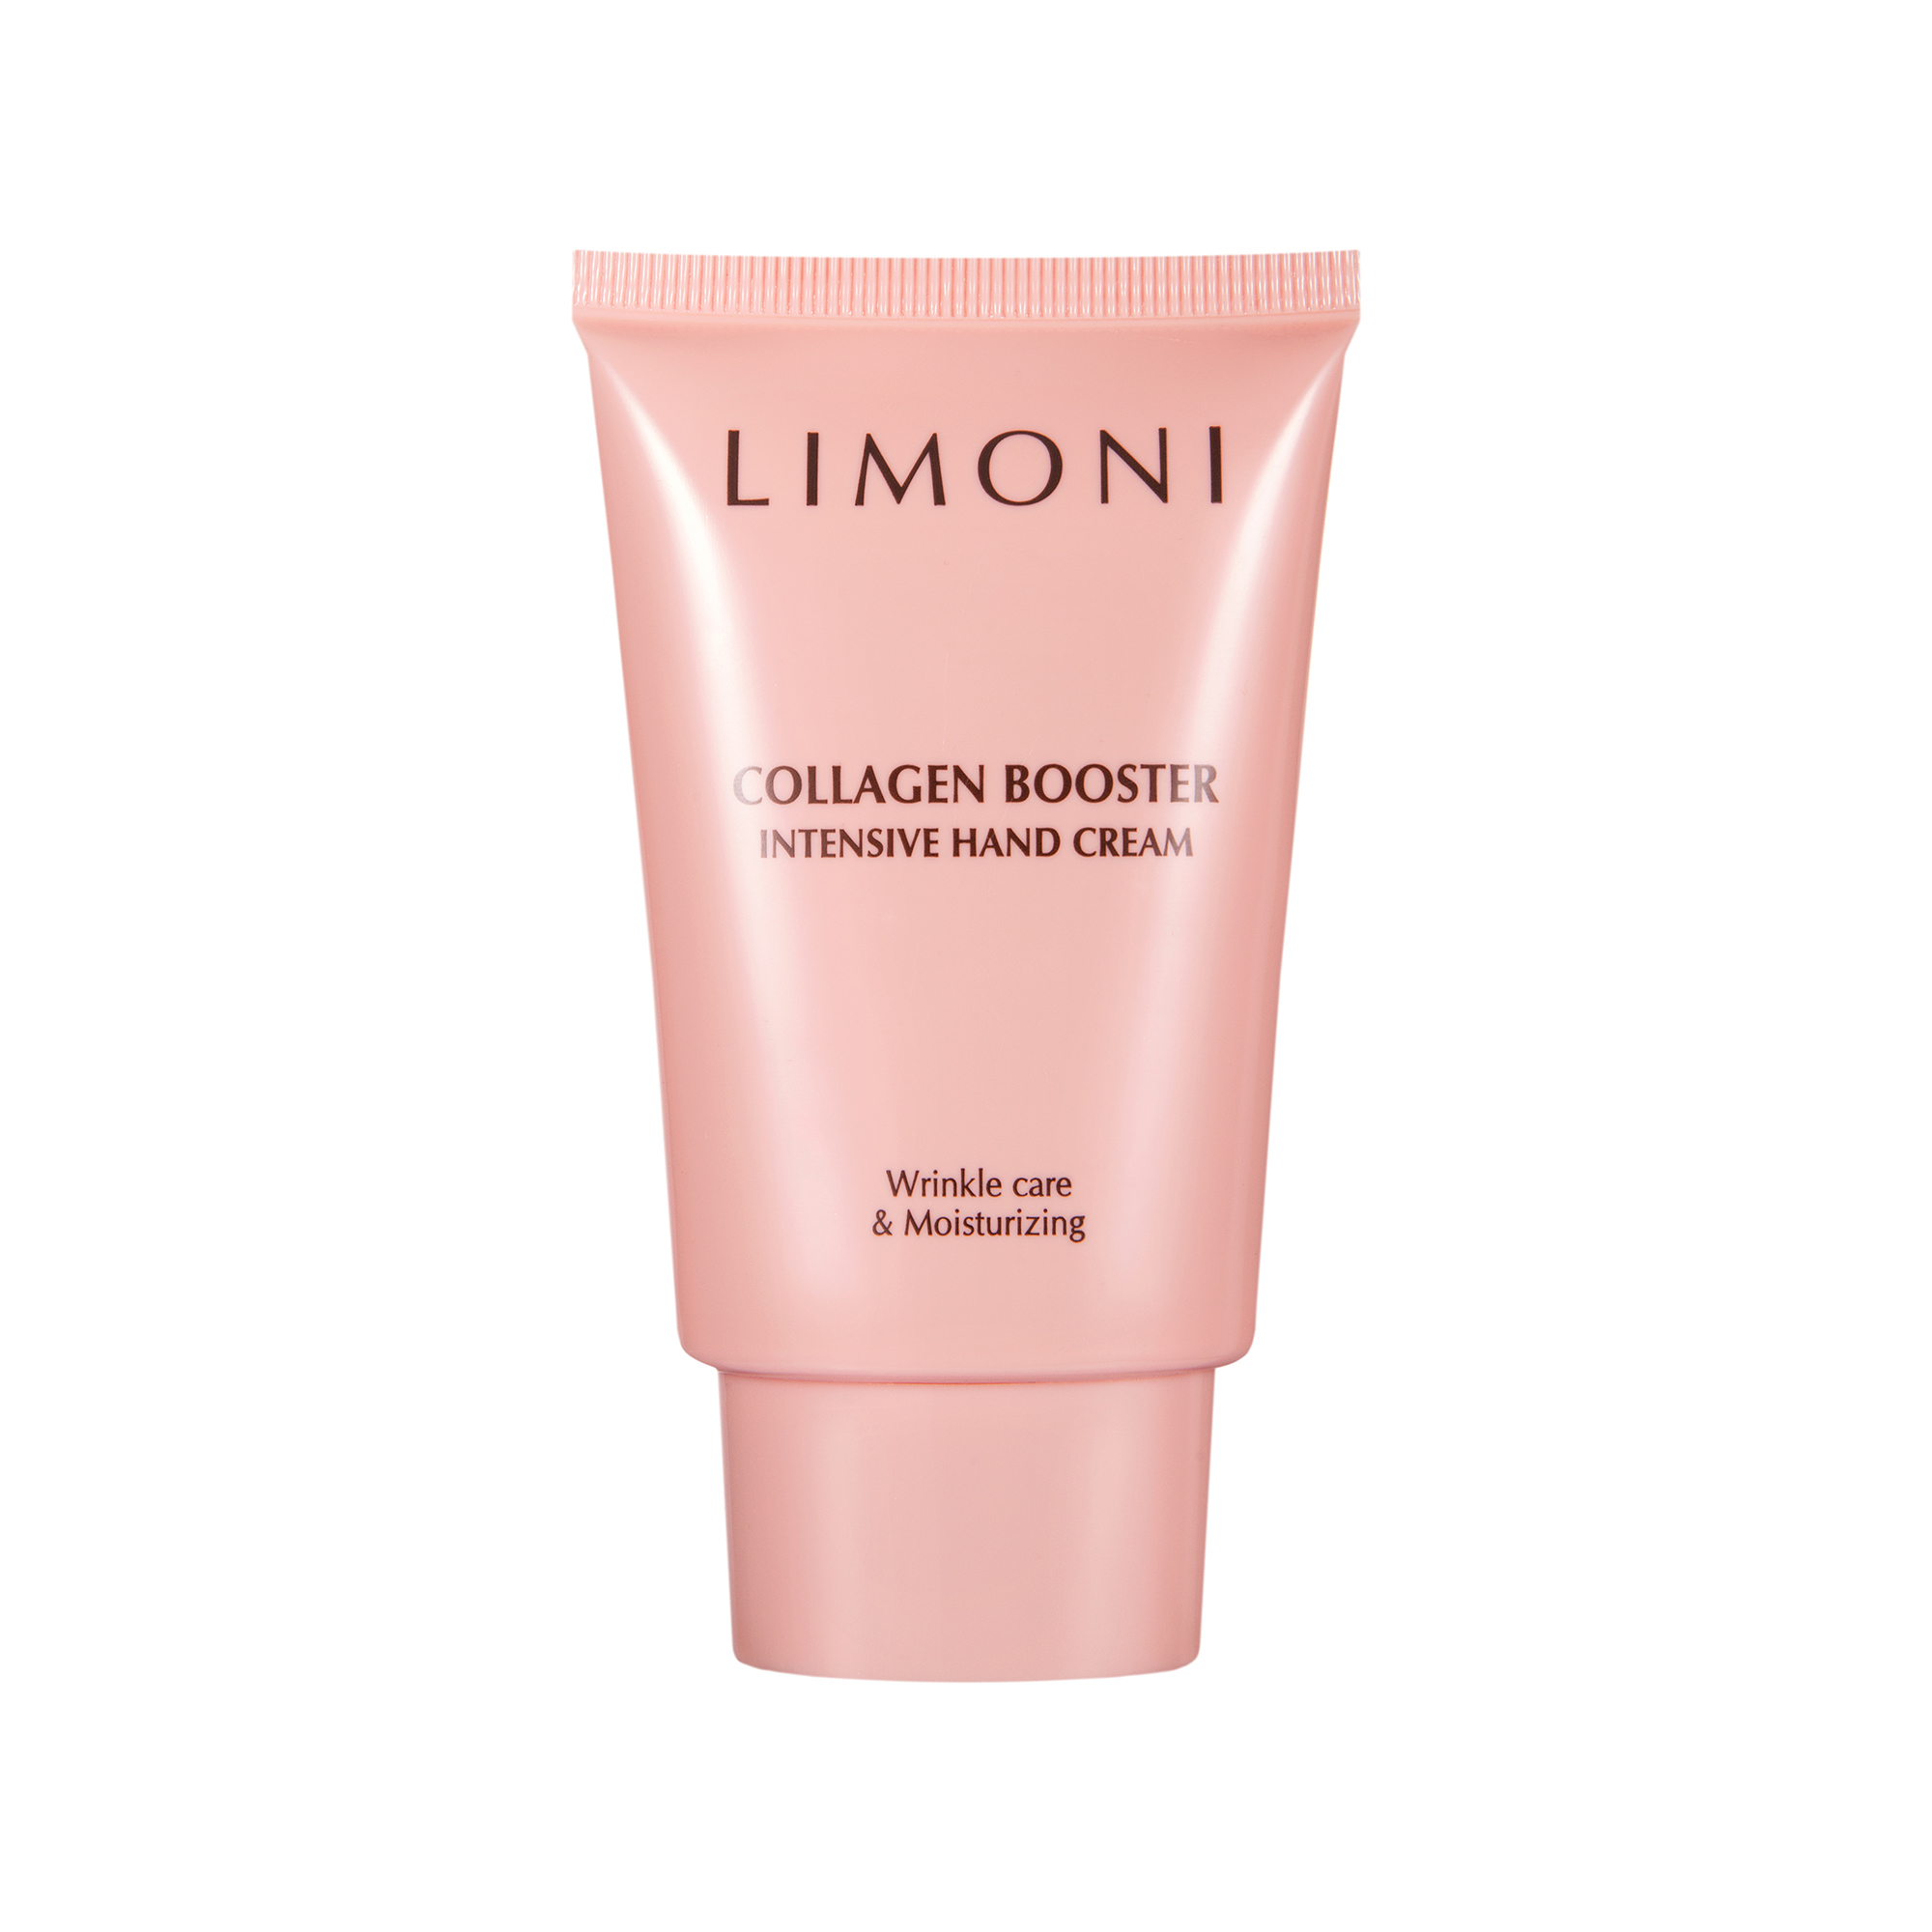 LIMONI Крем с коллагеном для рук / collagen booster intensive hand cream 50мл